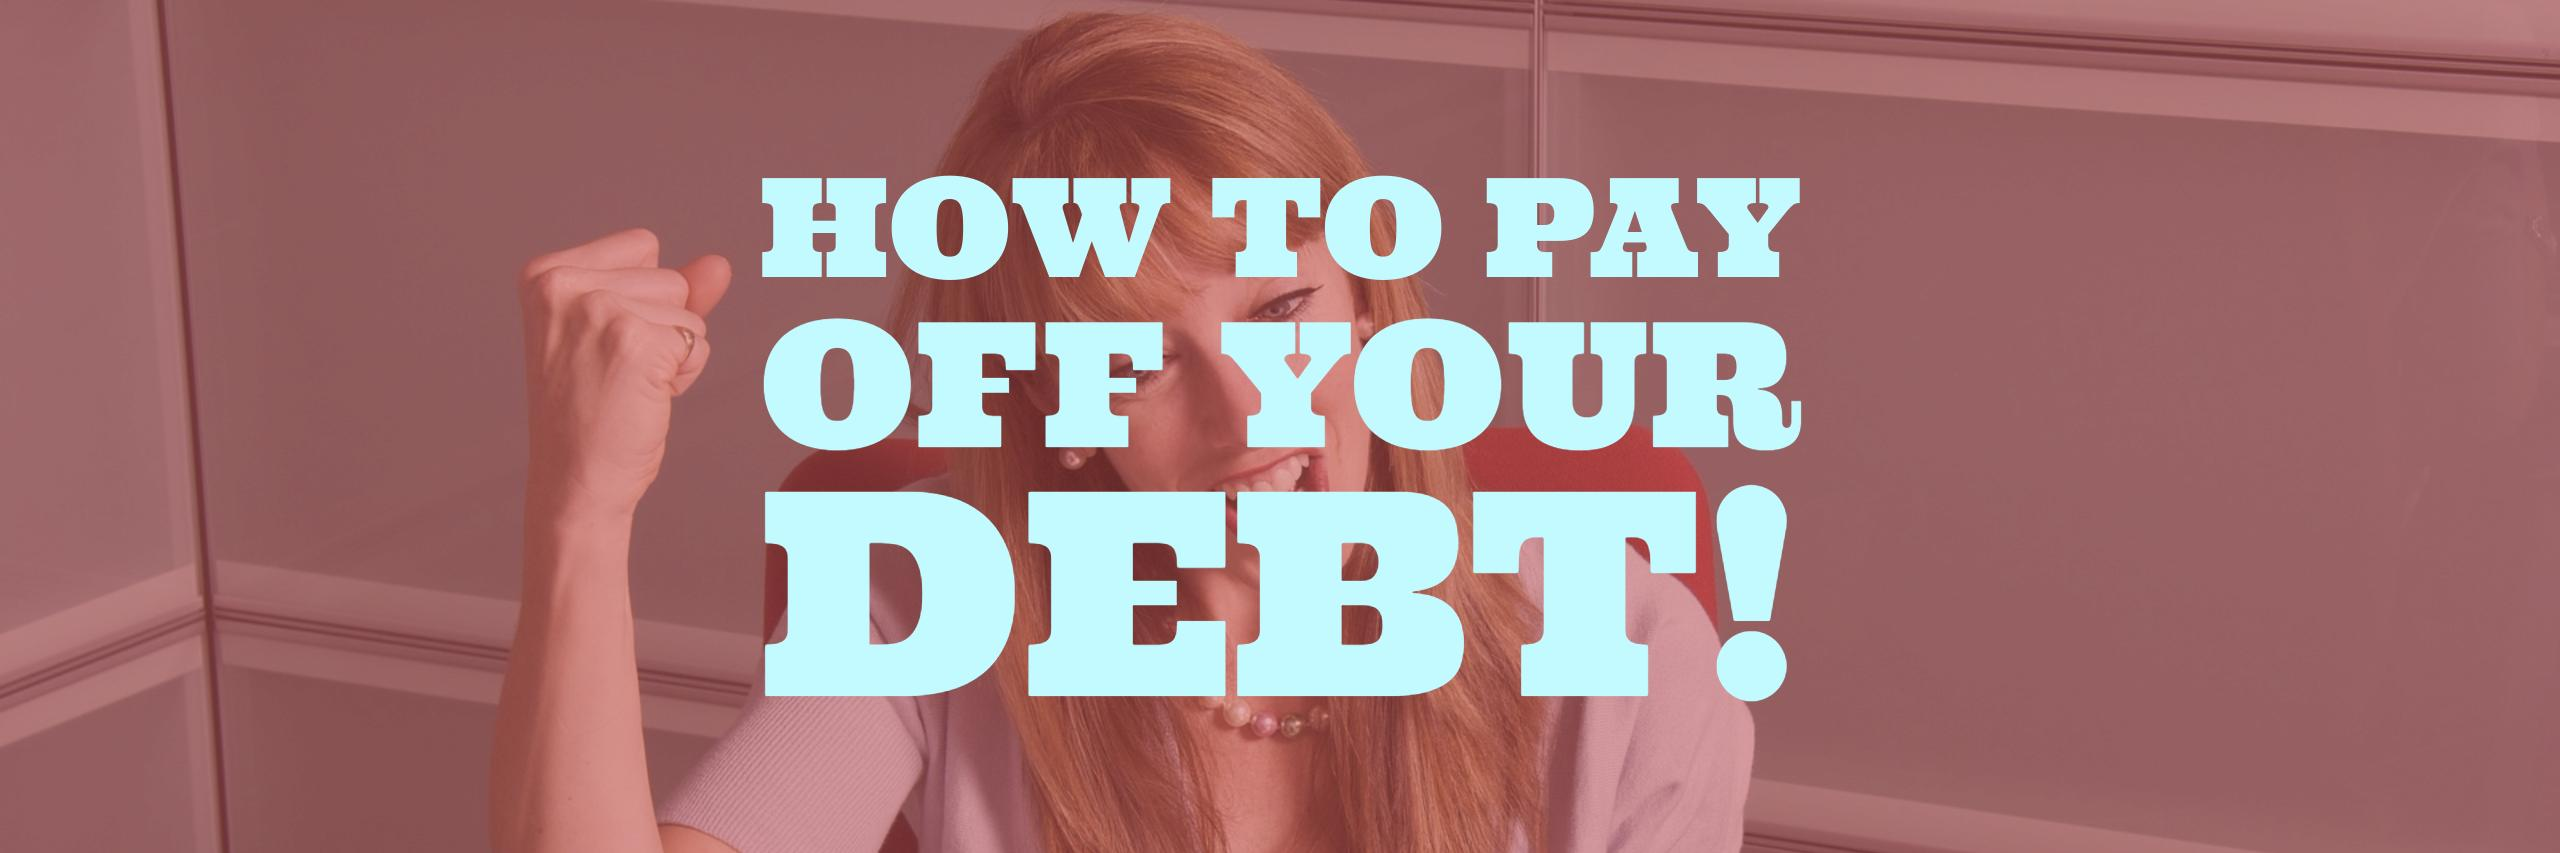 Learn the best way to pay off debt